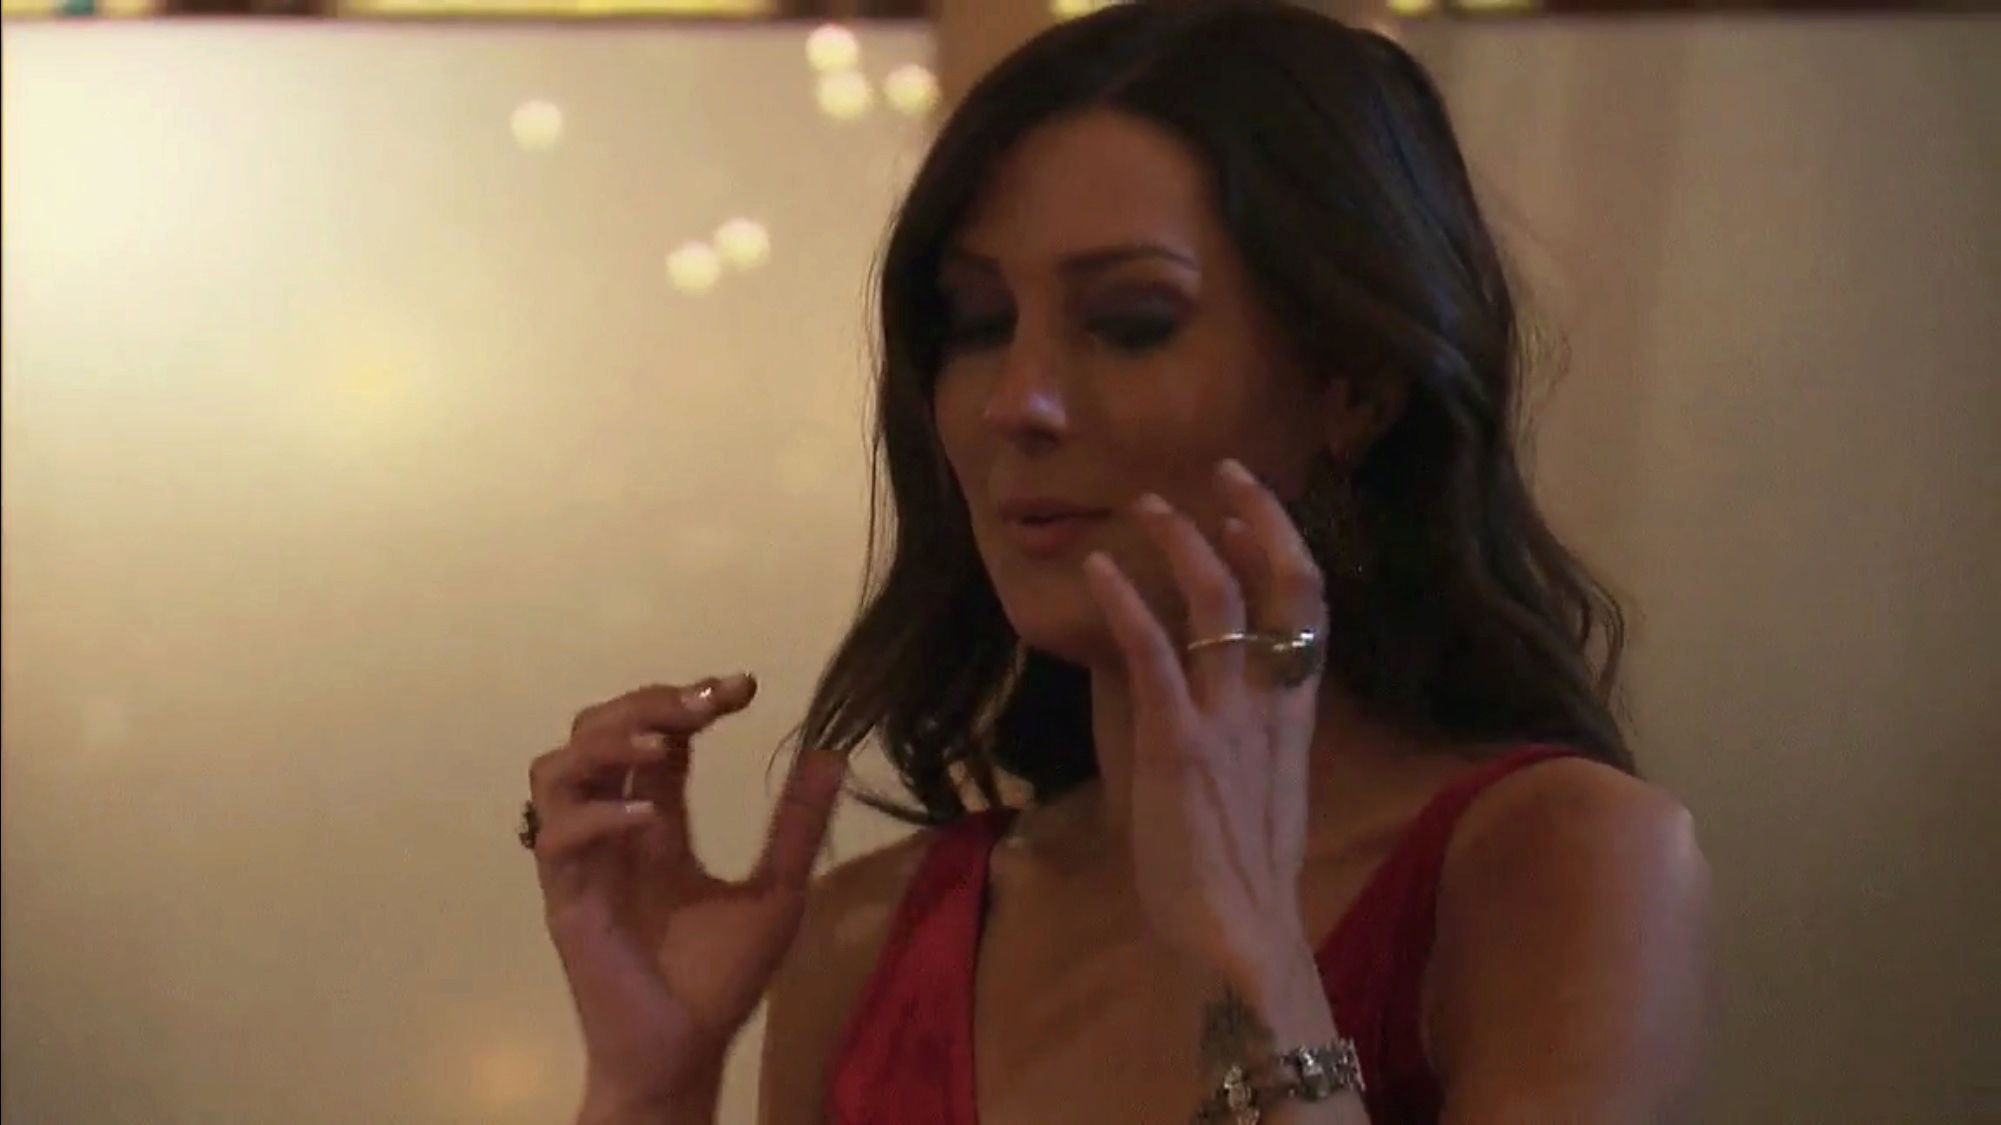 Bachelorette 14 - Becca Kufrin - ScreenCaps - NO Discussion - *Sleuthing Spoilers* A4d78c10